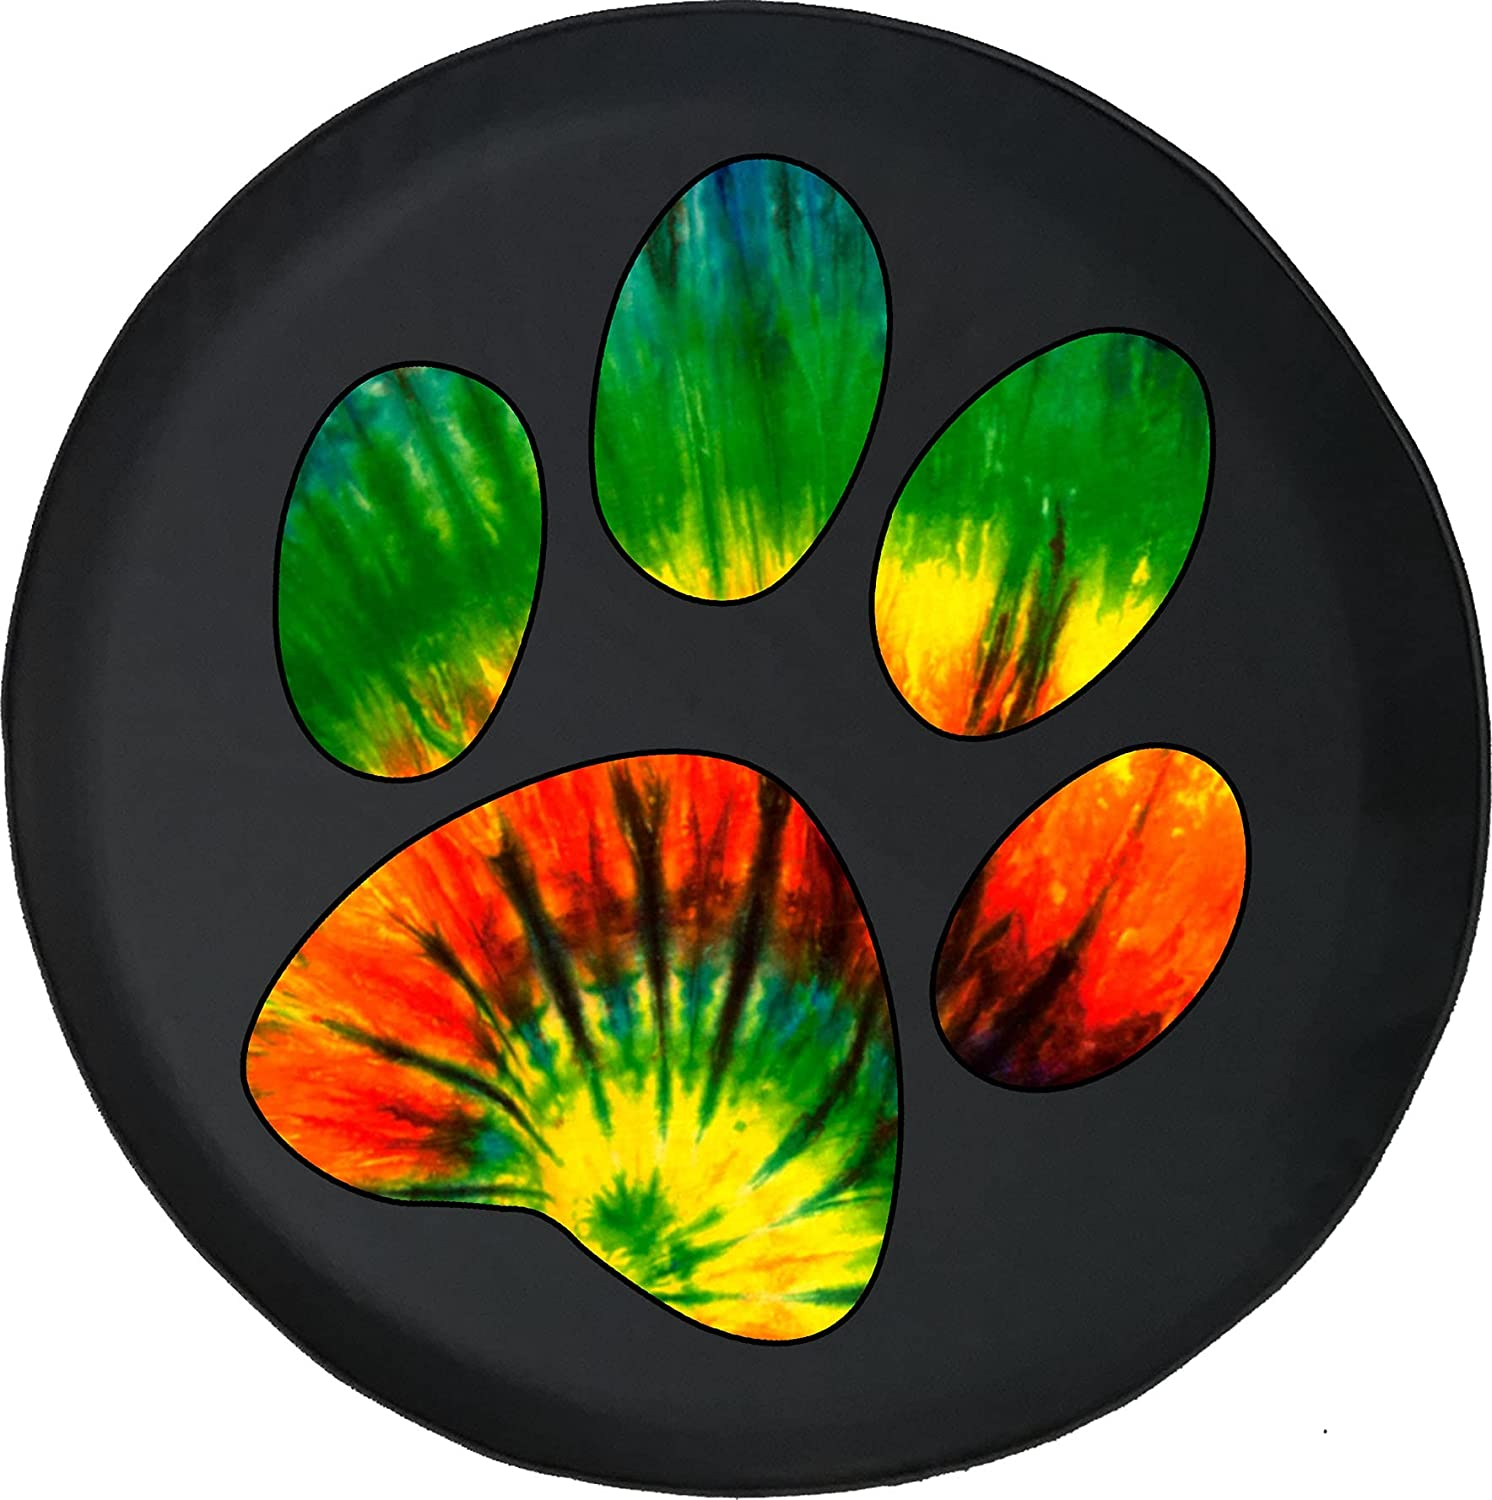 Tie Dye Dog Paw Prints Max 56% OFF Fits or Accessories SUV Spare Limited price sale Trailer RV